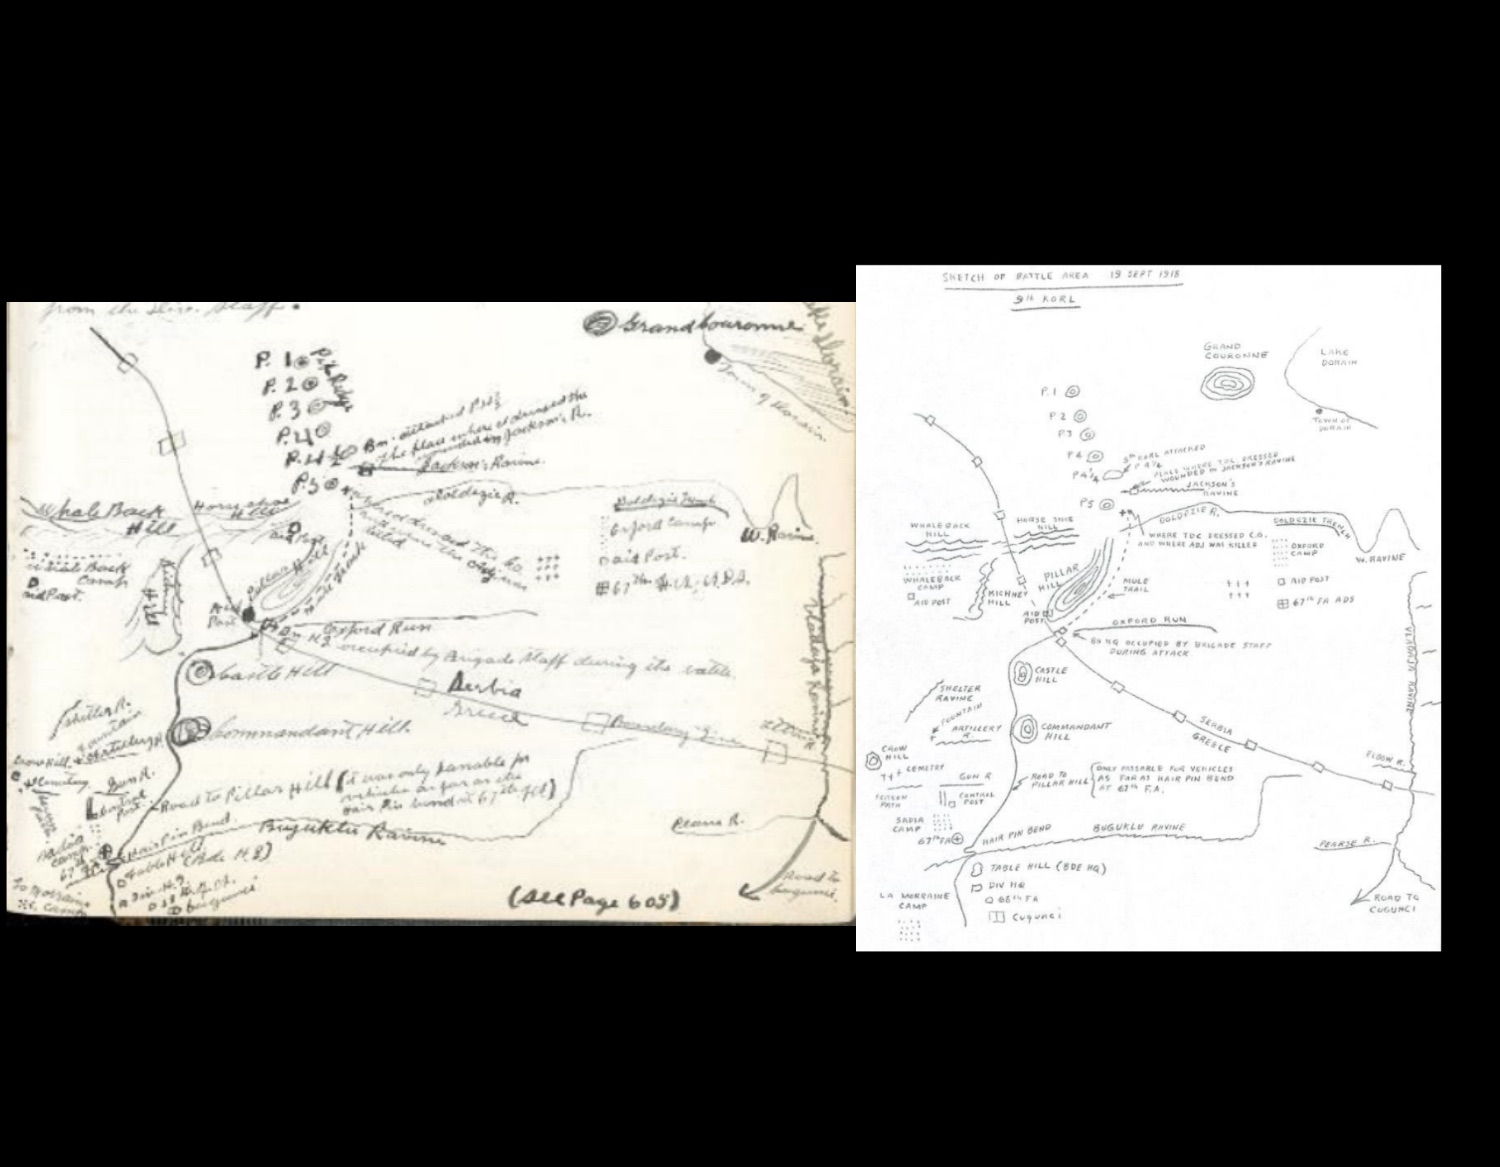 hight resolution of map of the battlefield left original by cumberland on page 664 of the diary right recreation by son william credit cwm archives archives du mcg